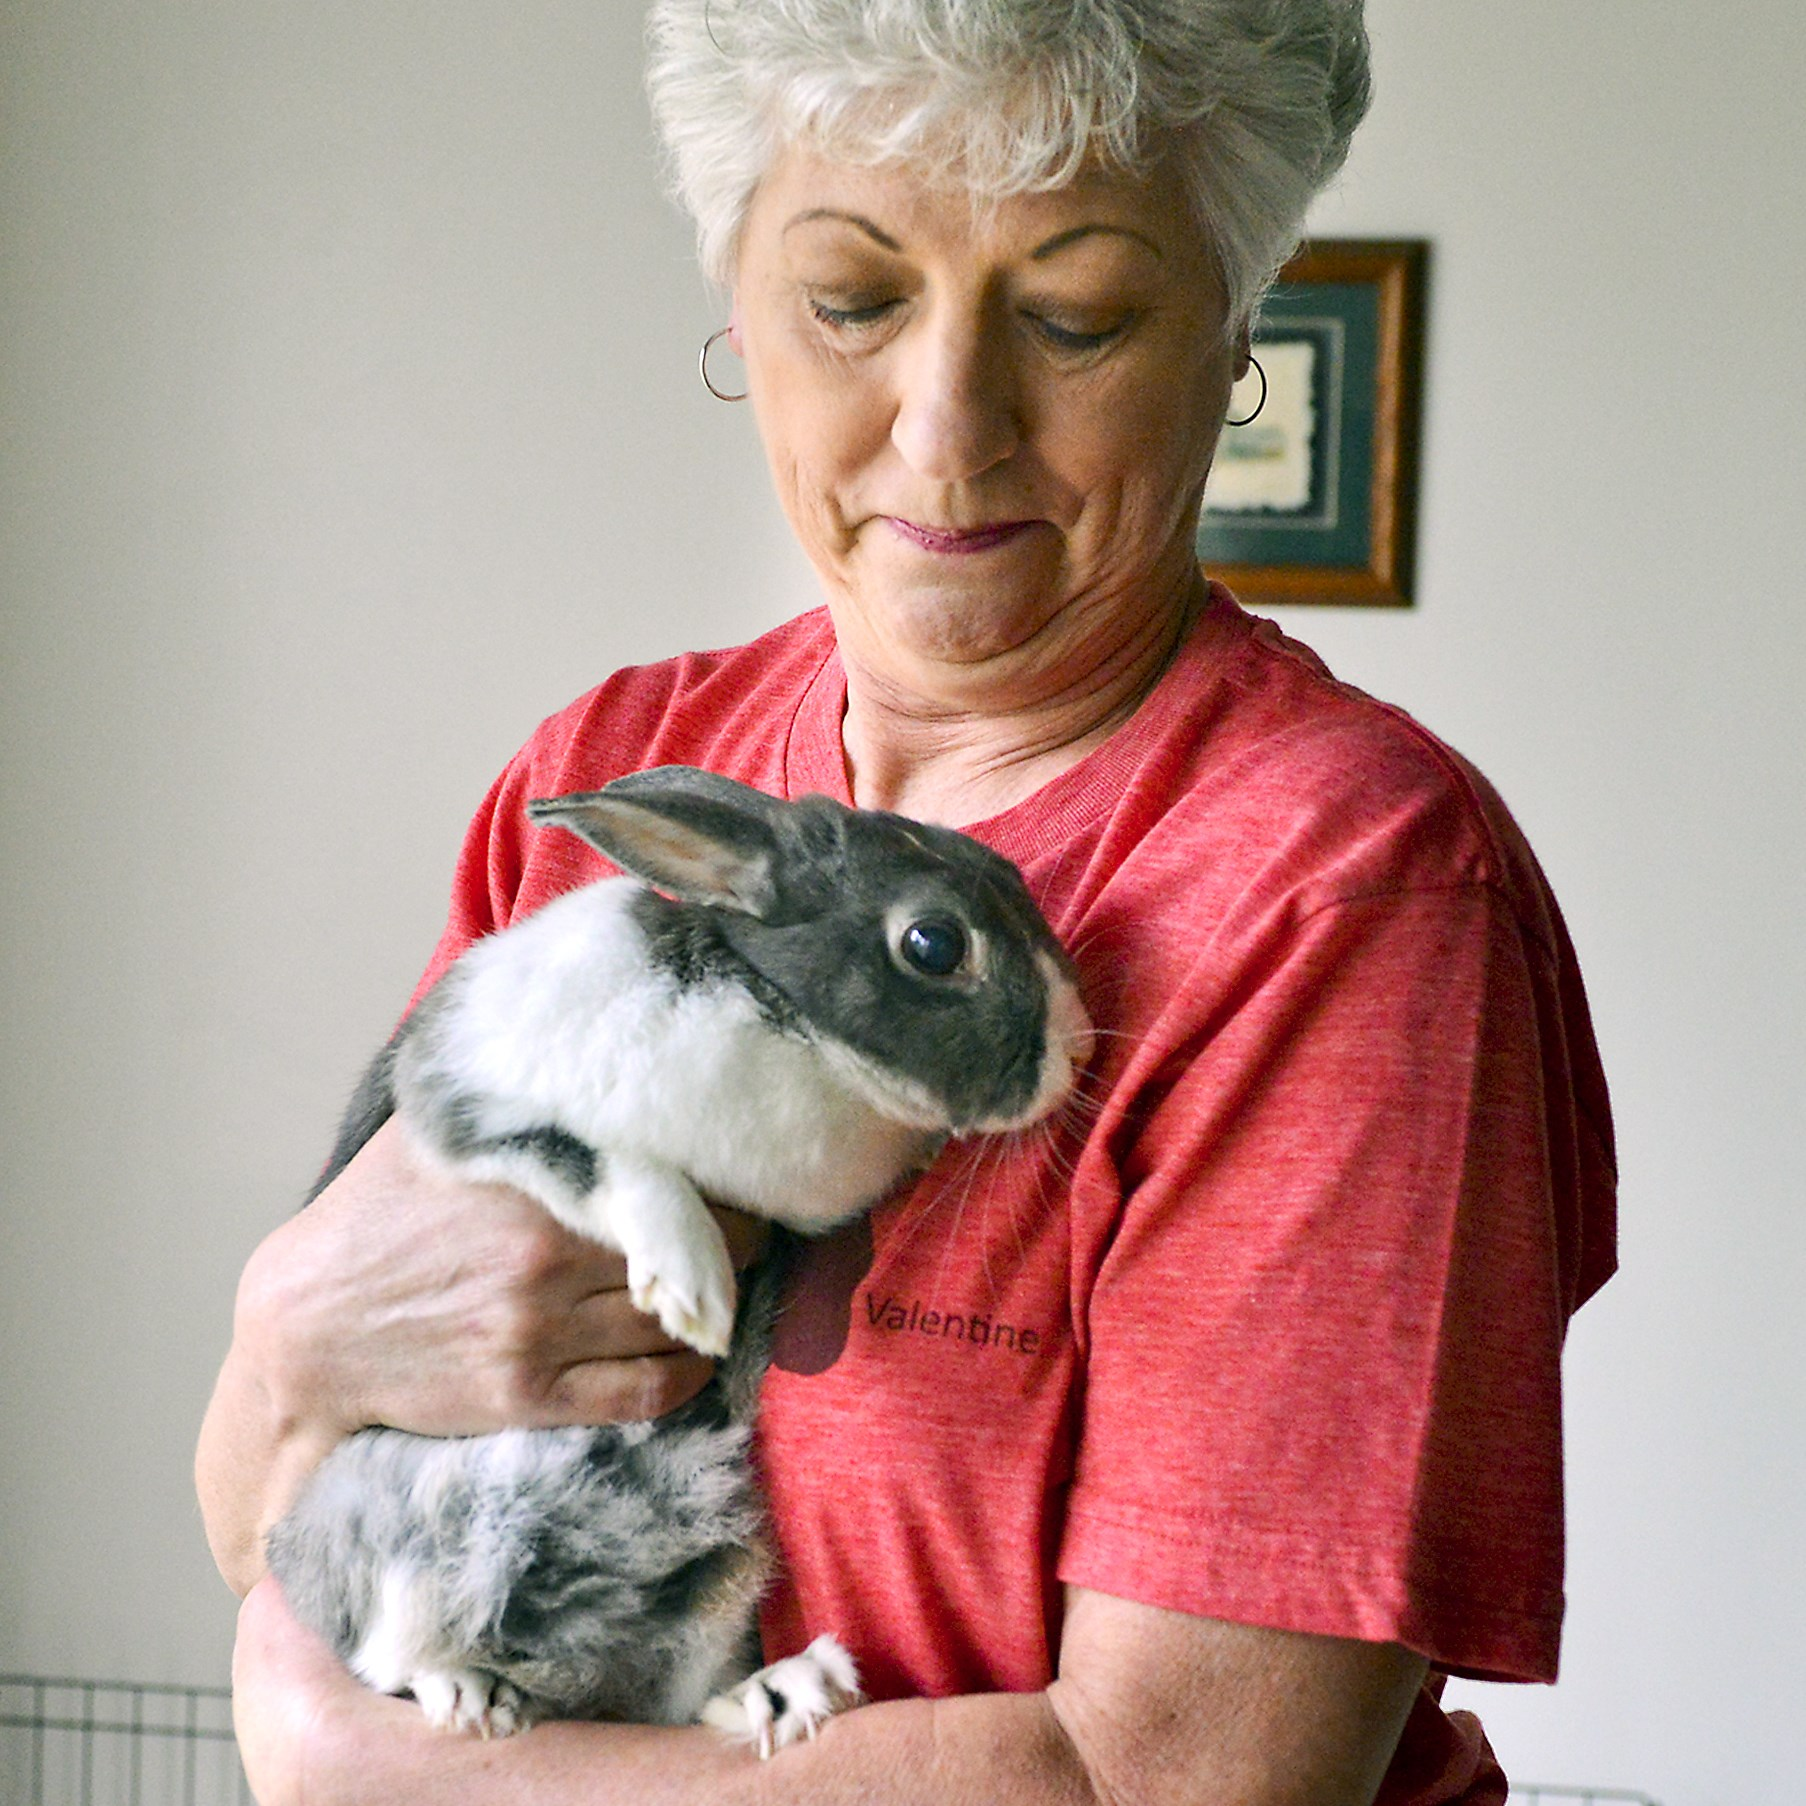 Susan Platek has been fostering LuLu, an 11-year-old Dutch mix rabbit since August 2014. LuLu has had many health issues, which makes adoption difficult.